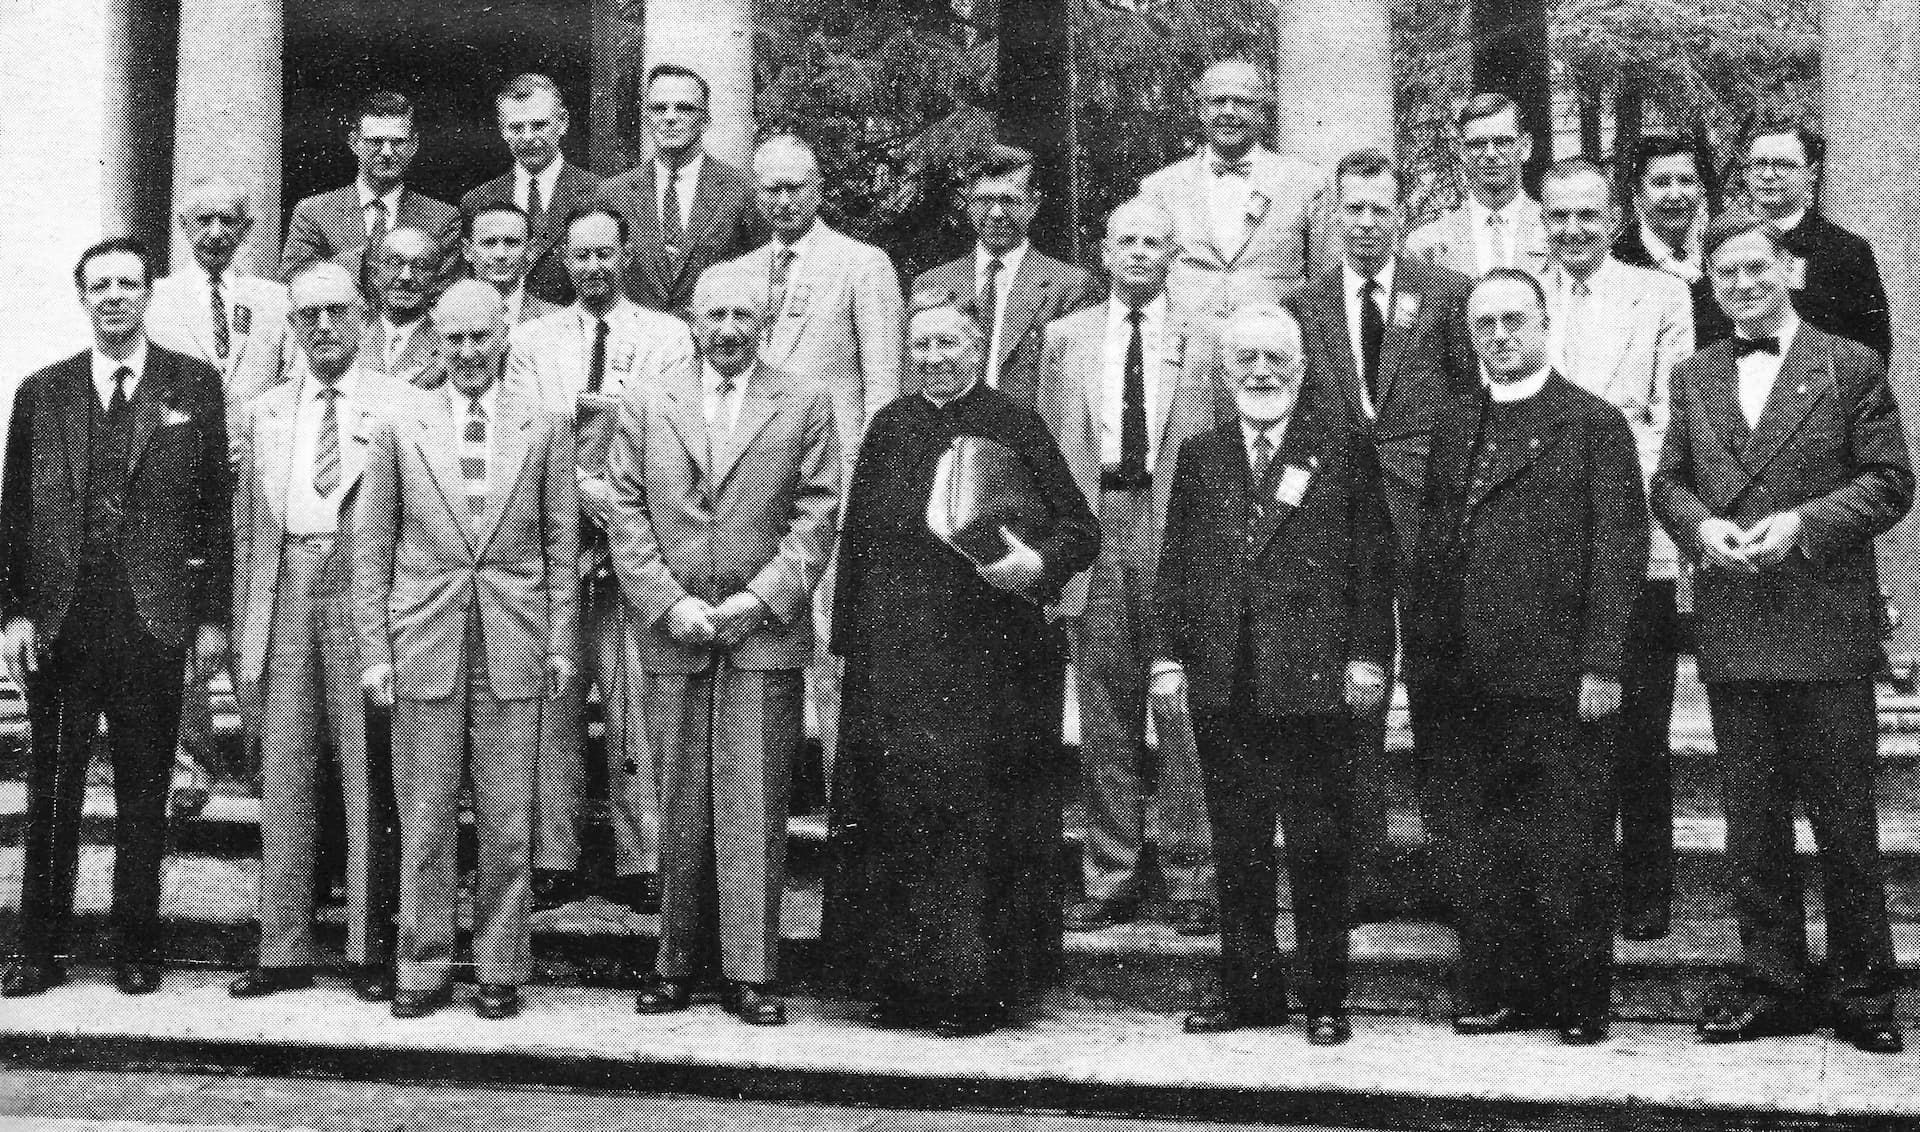 The Attendees of the 1957 Vatican Conference on Stellar Populations.